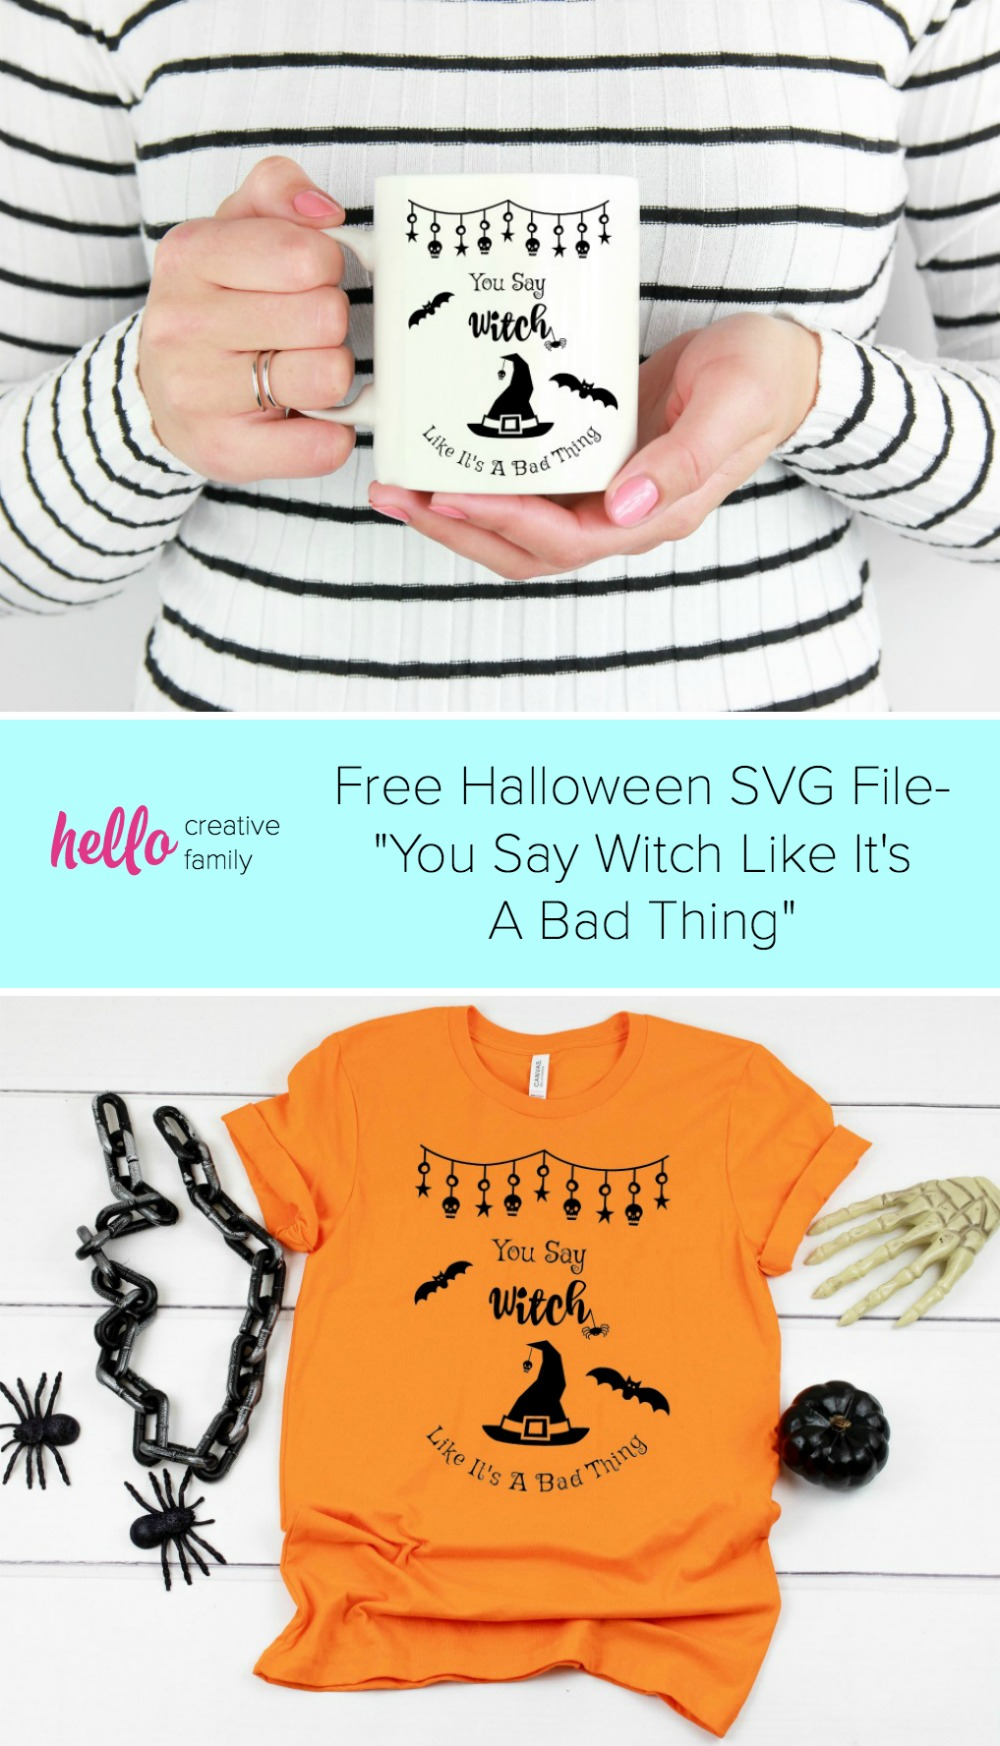 Dowload this Free Halloween SVG File- You Say Witch Like It's A Bad Thing from Hello Creative Family! Make this free cut file with your Cricut, Silhouette or favorite cutting machine for an adorable mug, shirt, tote bag or to use for a last minute Halloween Costume! Makes an easy handmade gift idea! #svg #Cricut #Silhouette #Halloween #witch